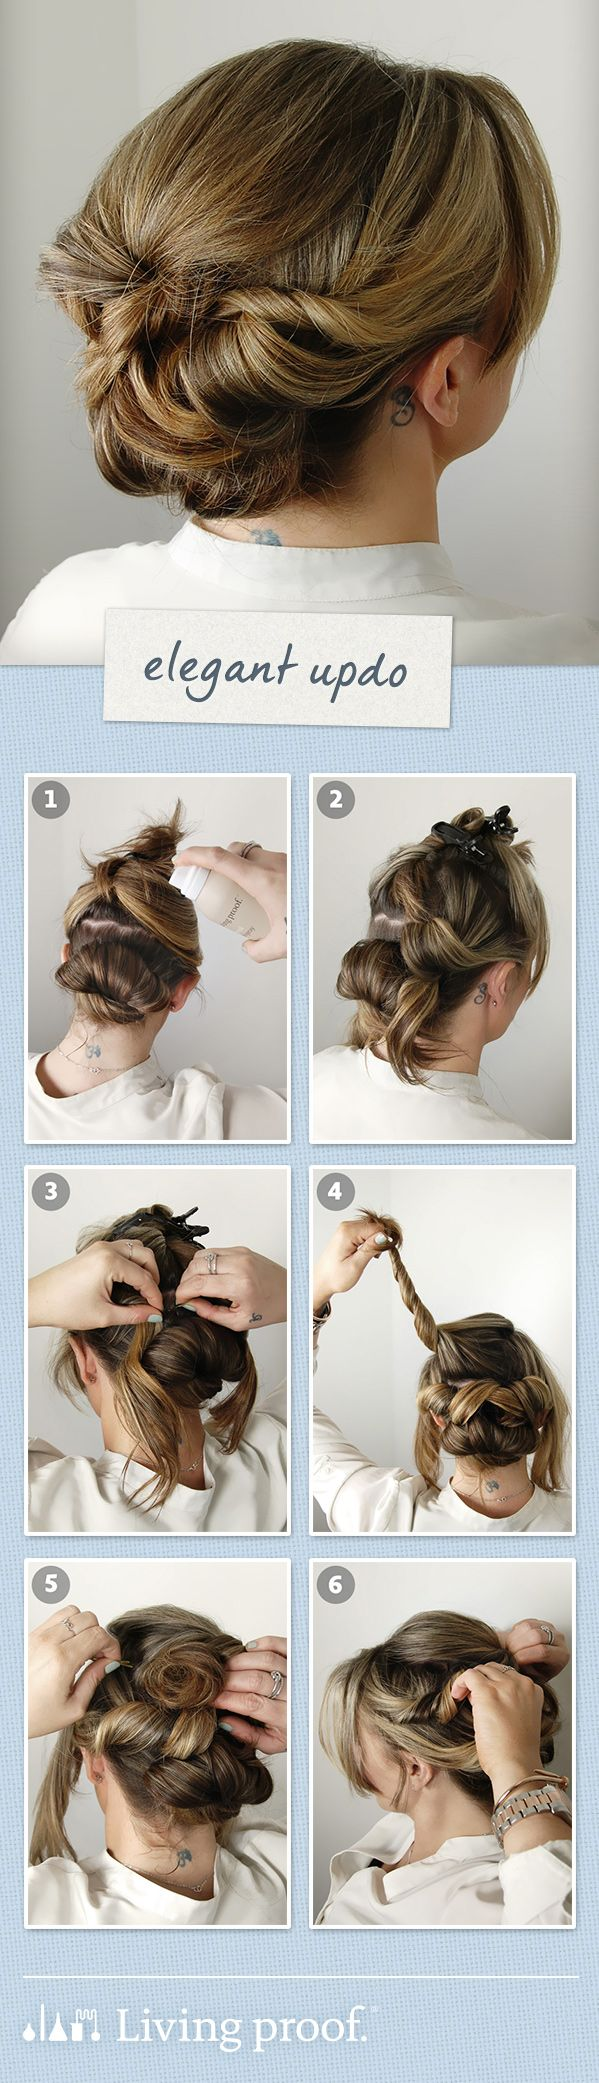 LivingProofInc Wedding Guest Hairstyle:Elegant Updo | hair care and ...